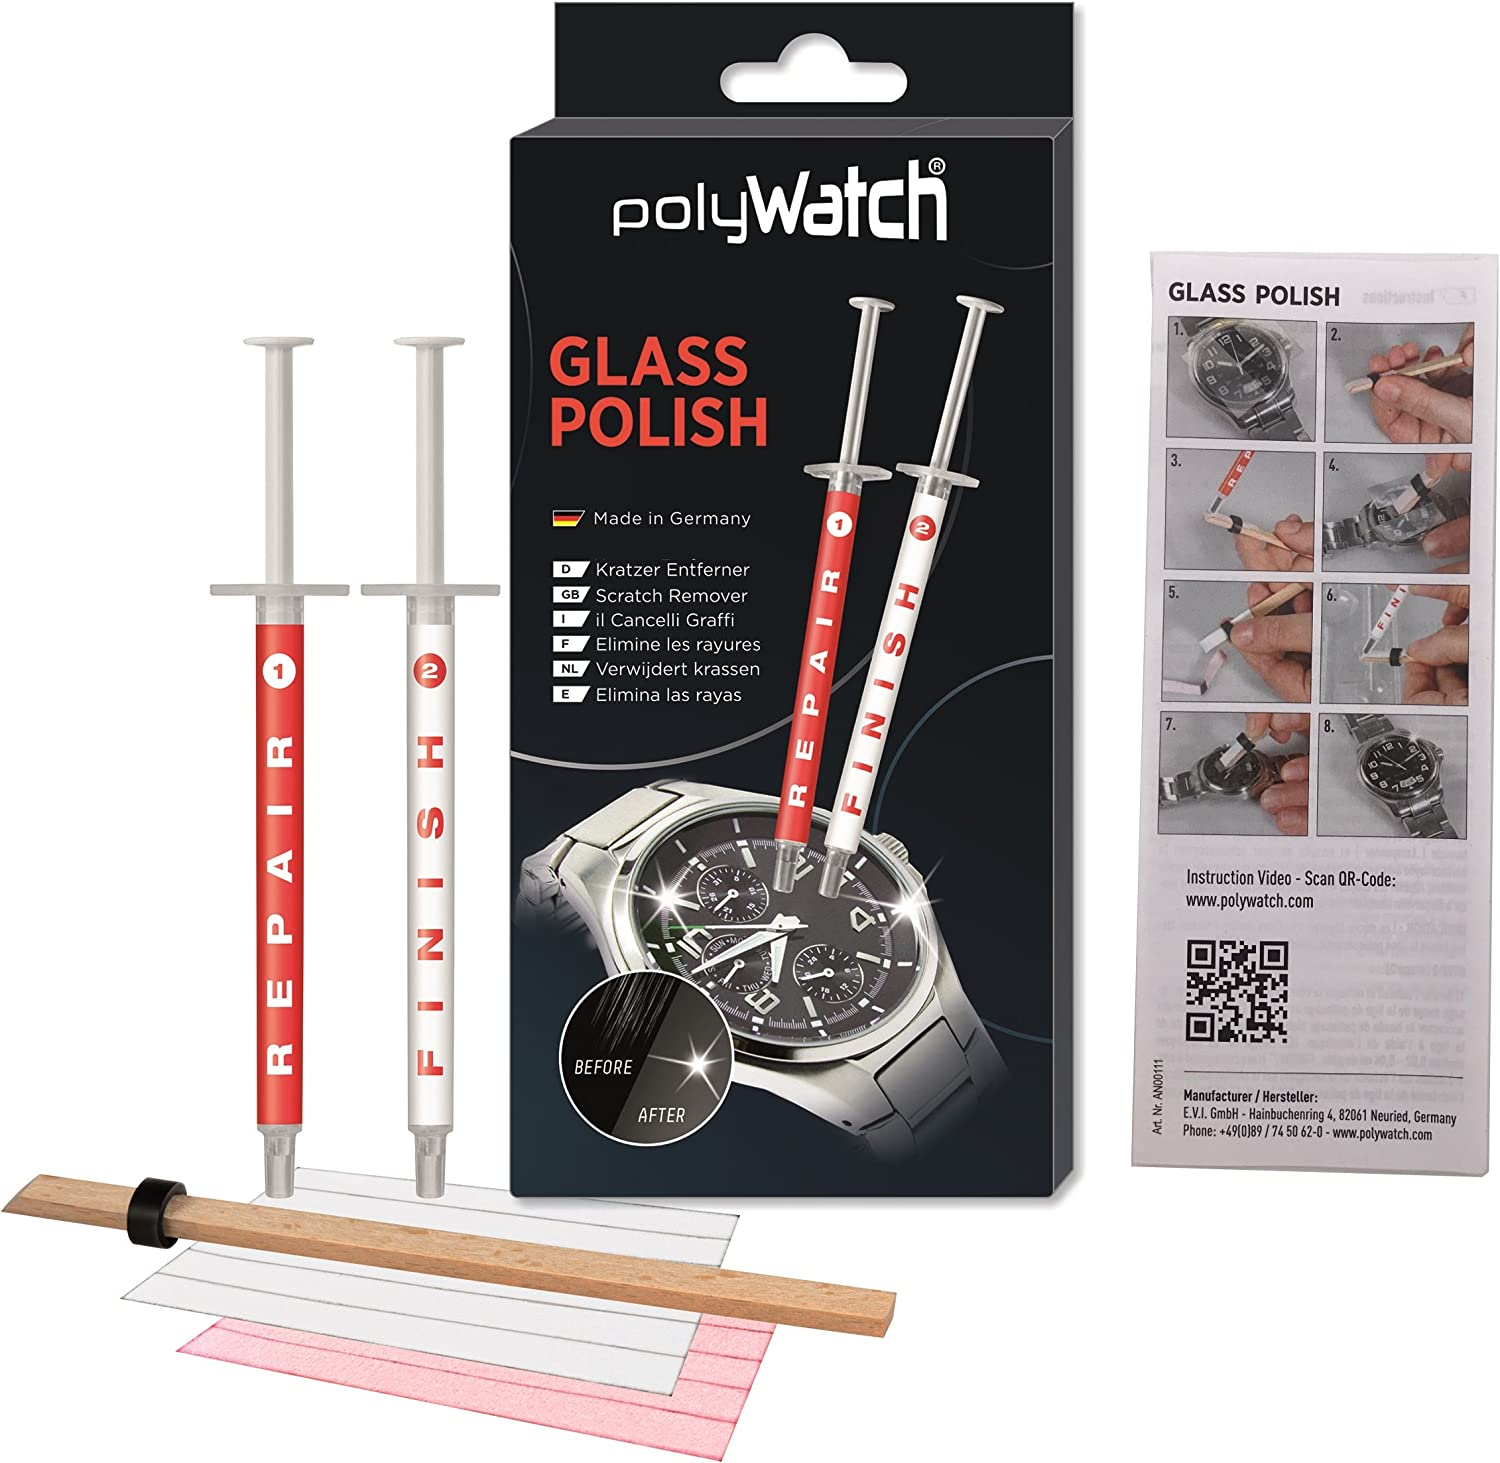 PolyWatch 8541771529 Glass Polish Glass Scratch Remover/Sapphire Scratch Remover/Repair Cell Phone Screens